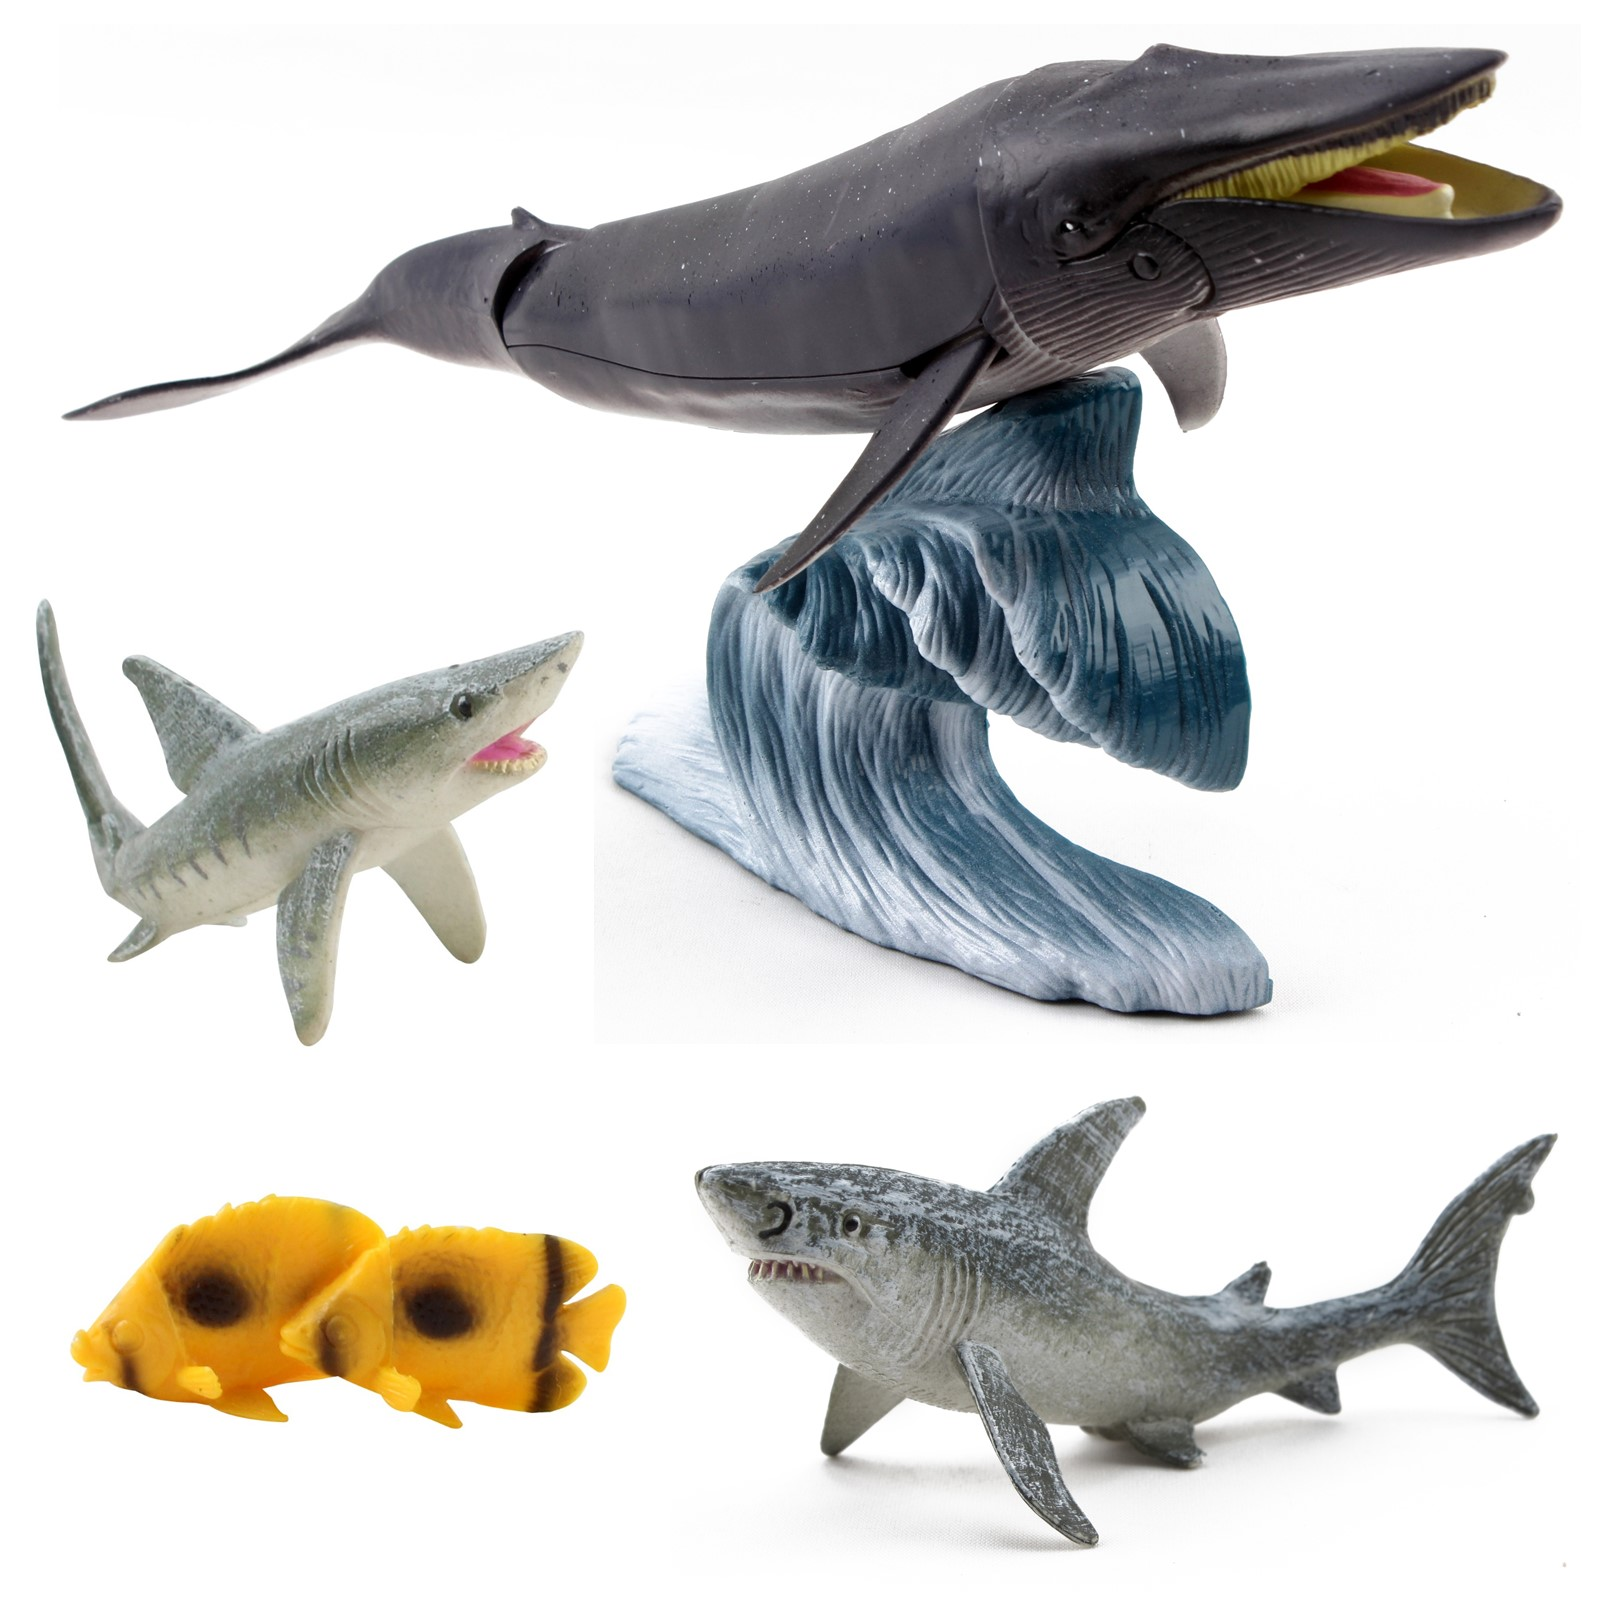 Marine Animal Set 6 Piece Includes Humpback Whale, 2 Sharks, 2 Ocean Fish And Wave Stand Aquatic Life Figurine Species Sea Creatures Kids Play Toys Great Gift For Children Girls Boys Toddlers